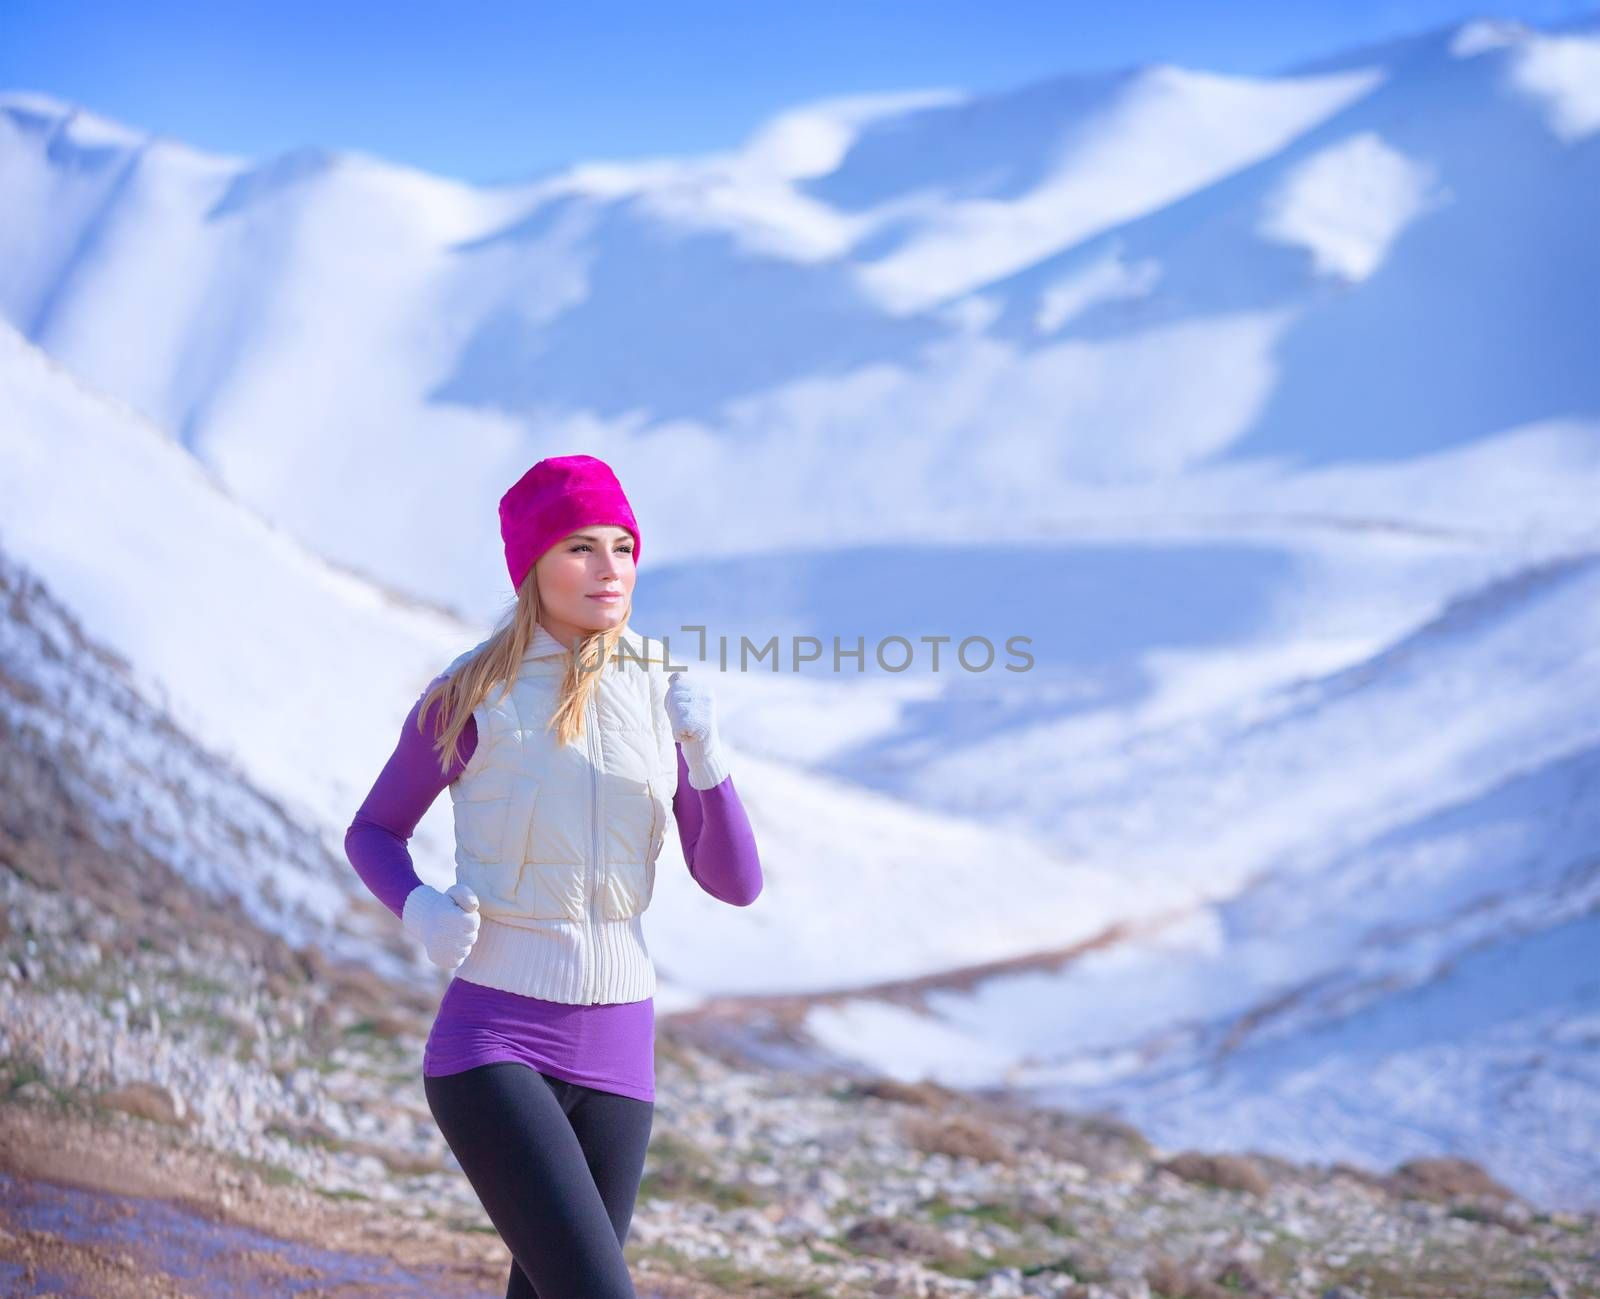 Jogging outdoors, cute sportive woman running along mountains covered with snow, workout in winter time, active lifestyle concept